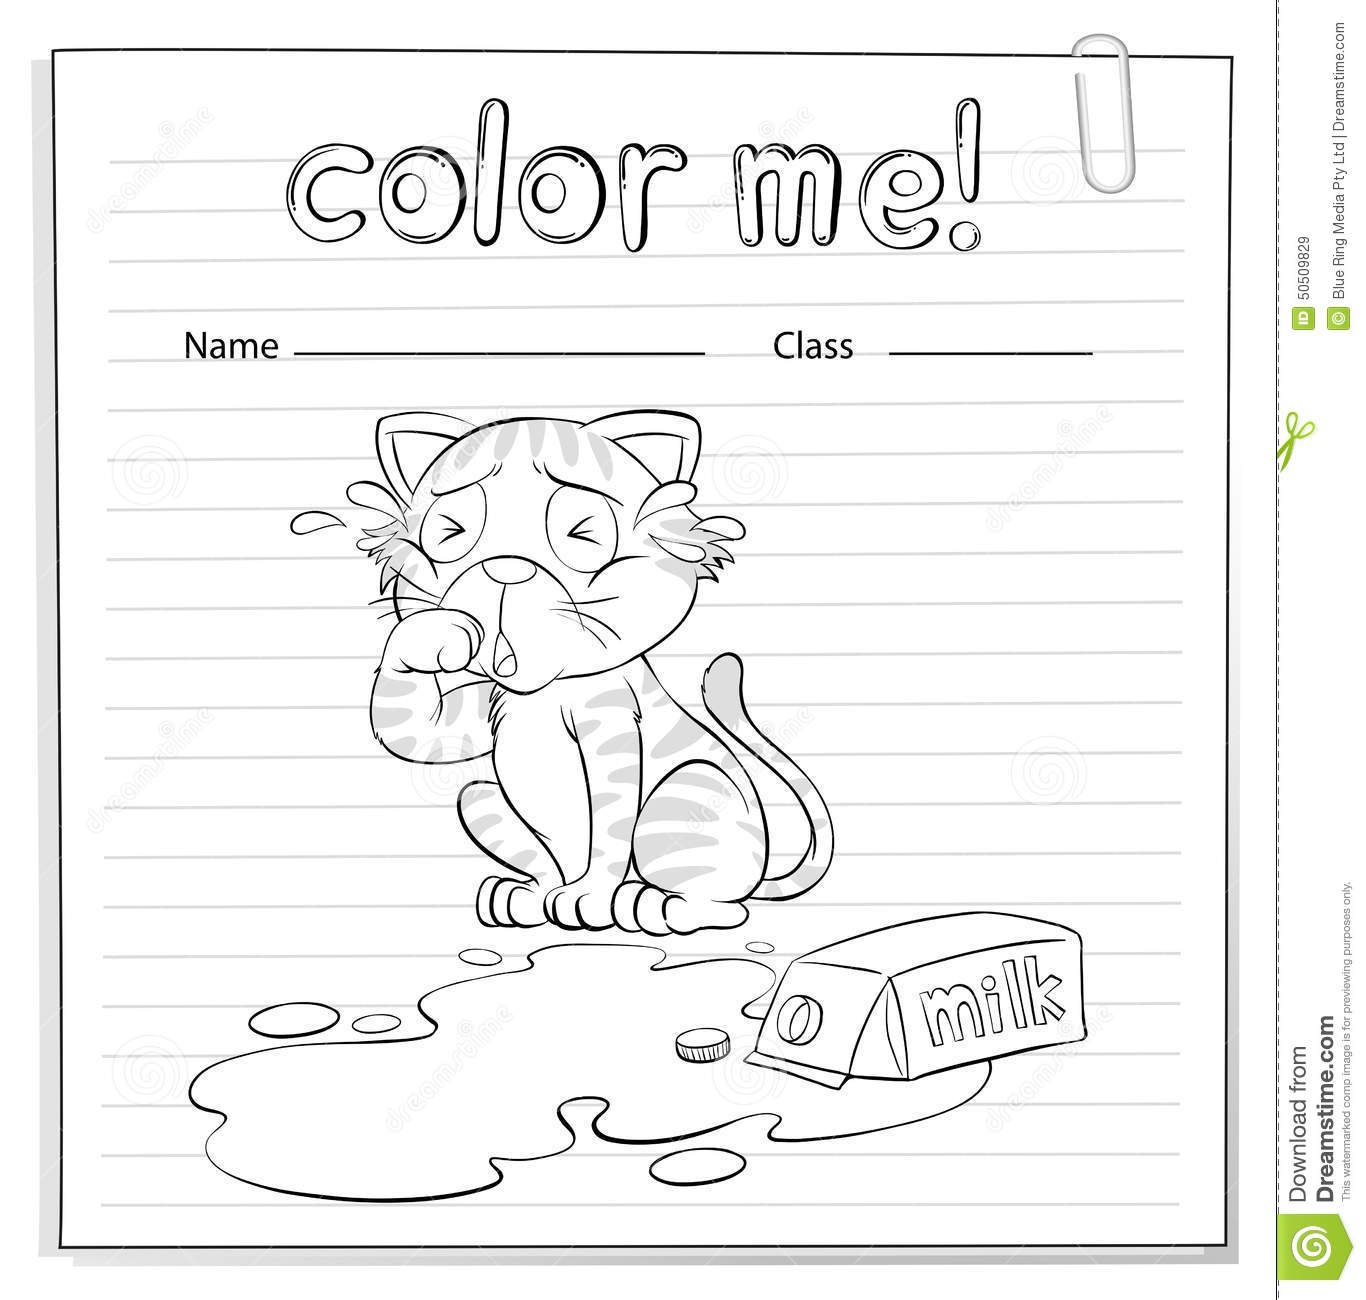 A Coloring Worksheet With A Cat Stock Vector